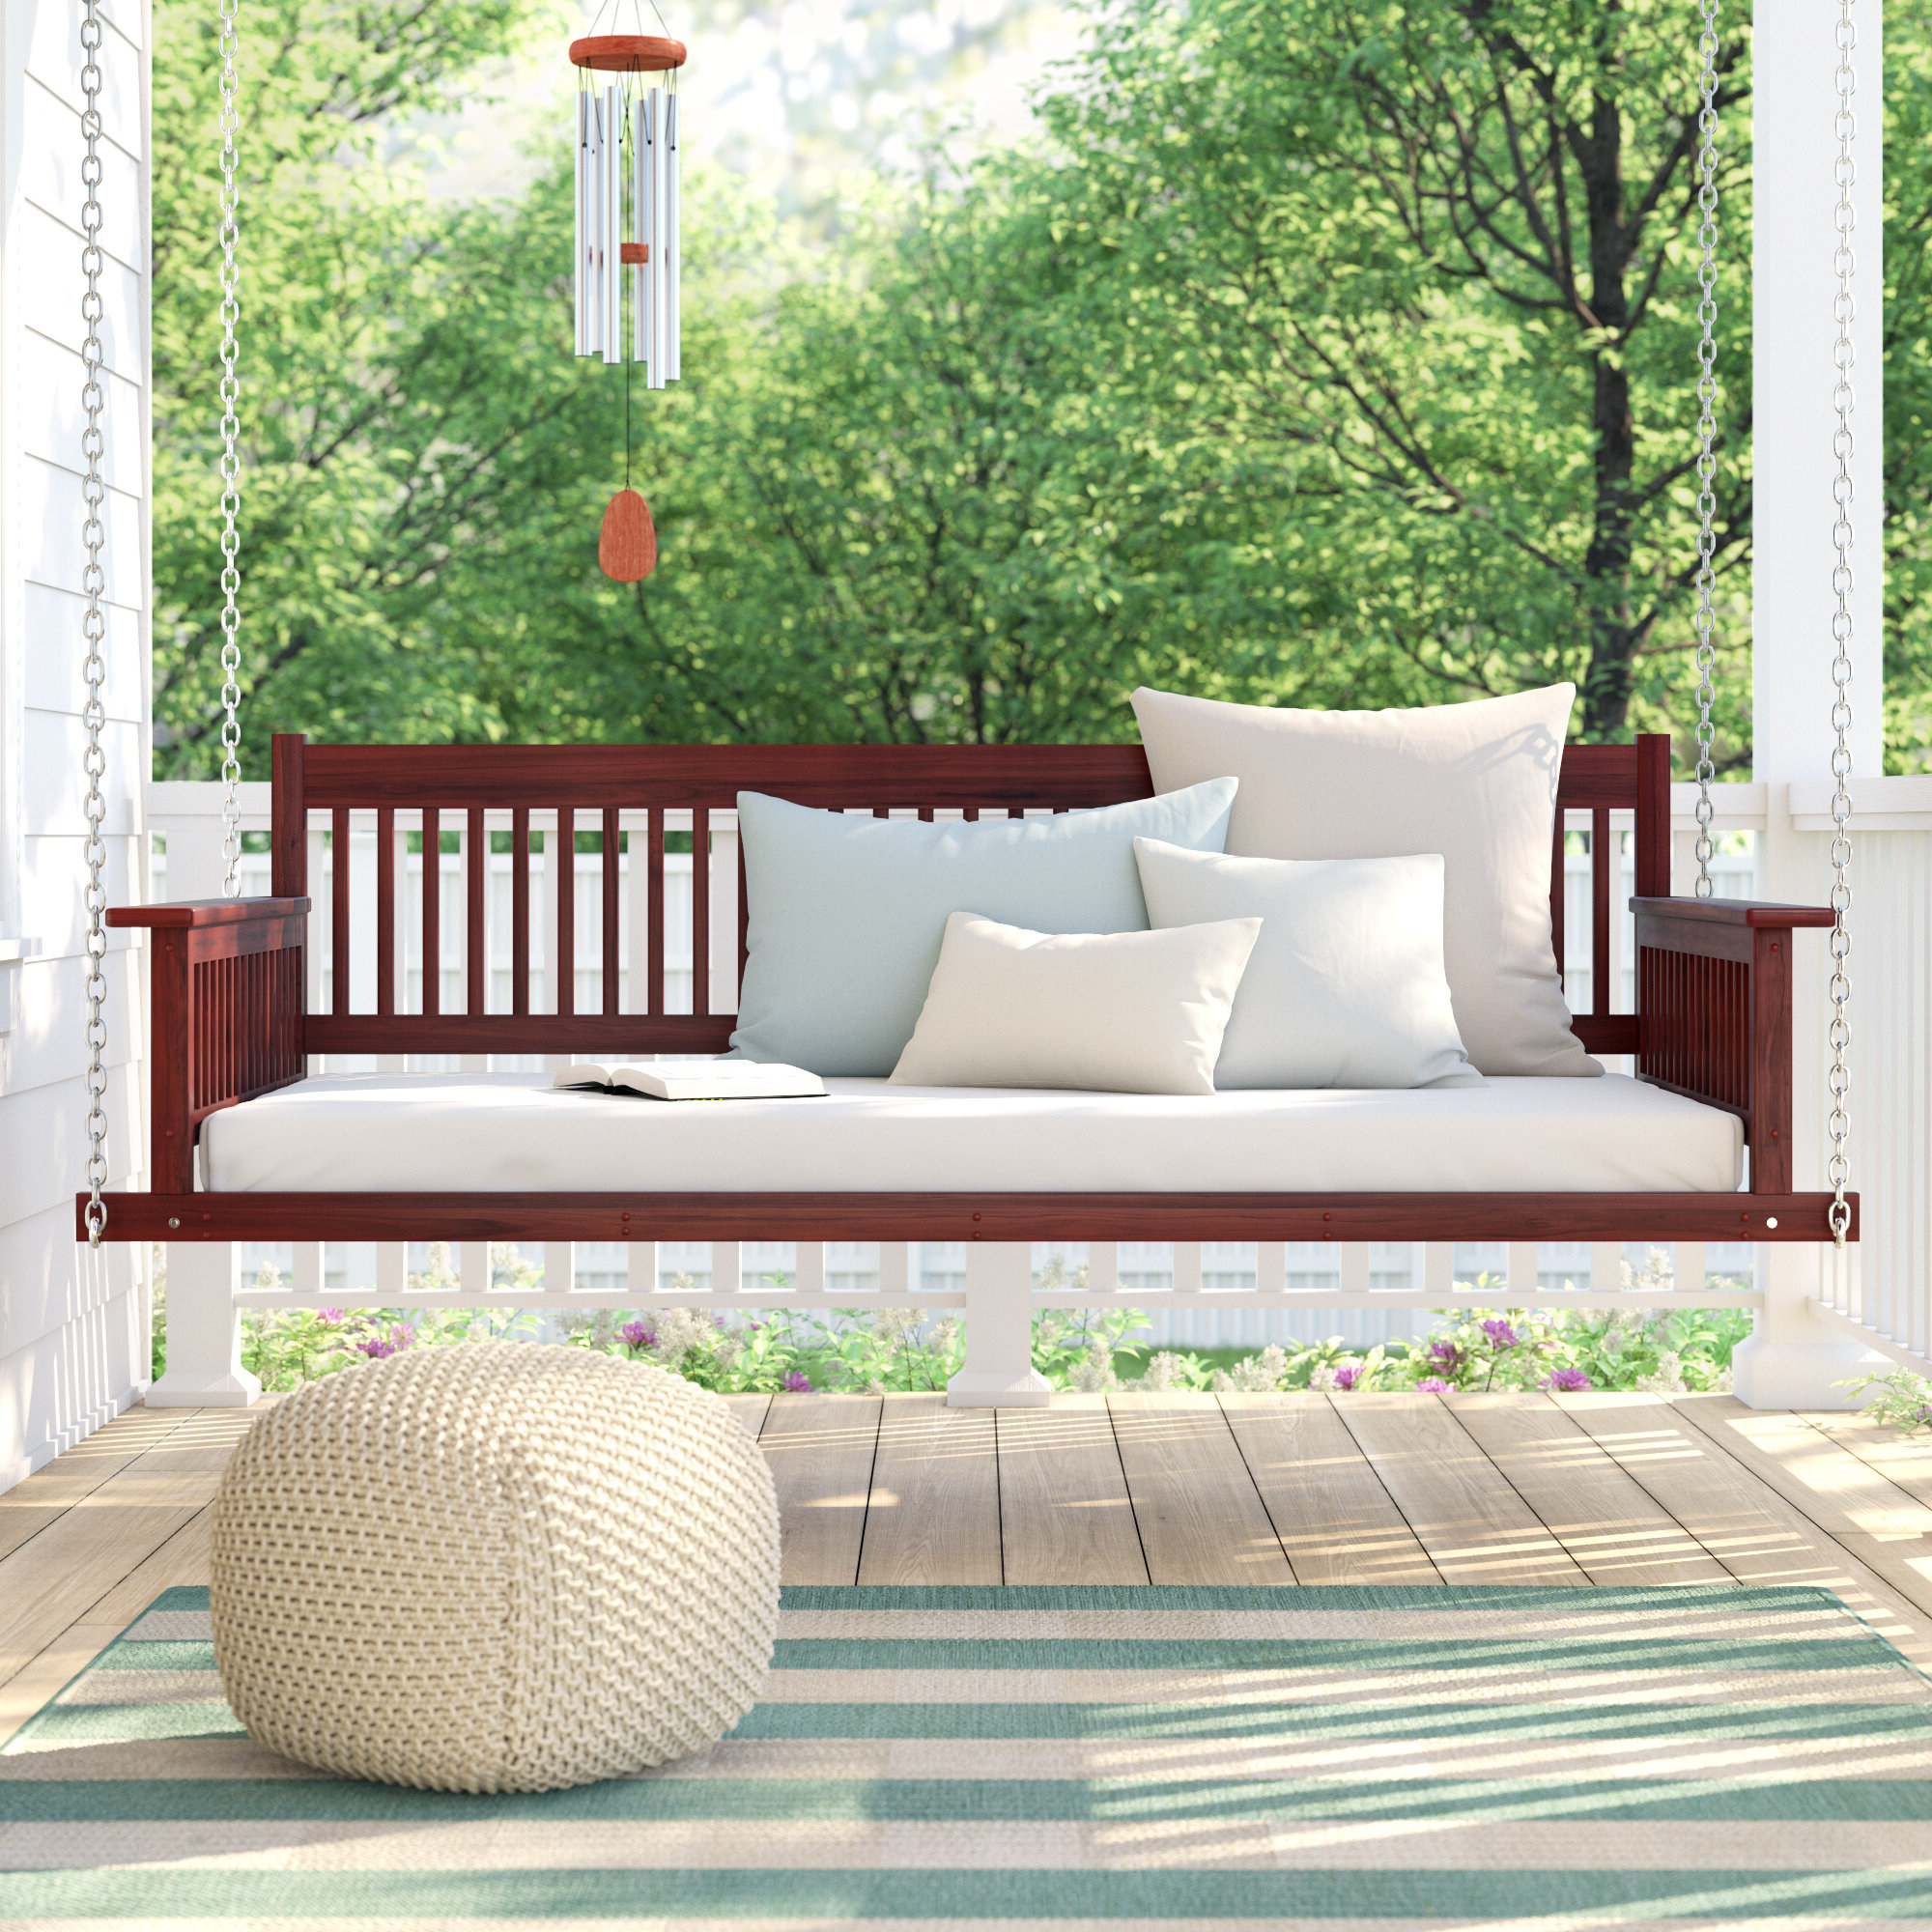 Quandro Day Bed Porch Swing Throughout Most Popular Day Bed Porch Swings (Gallery 20 of 25)